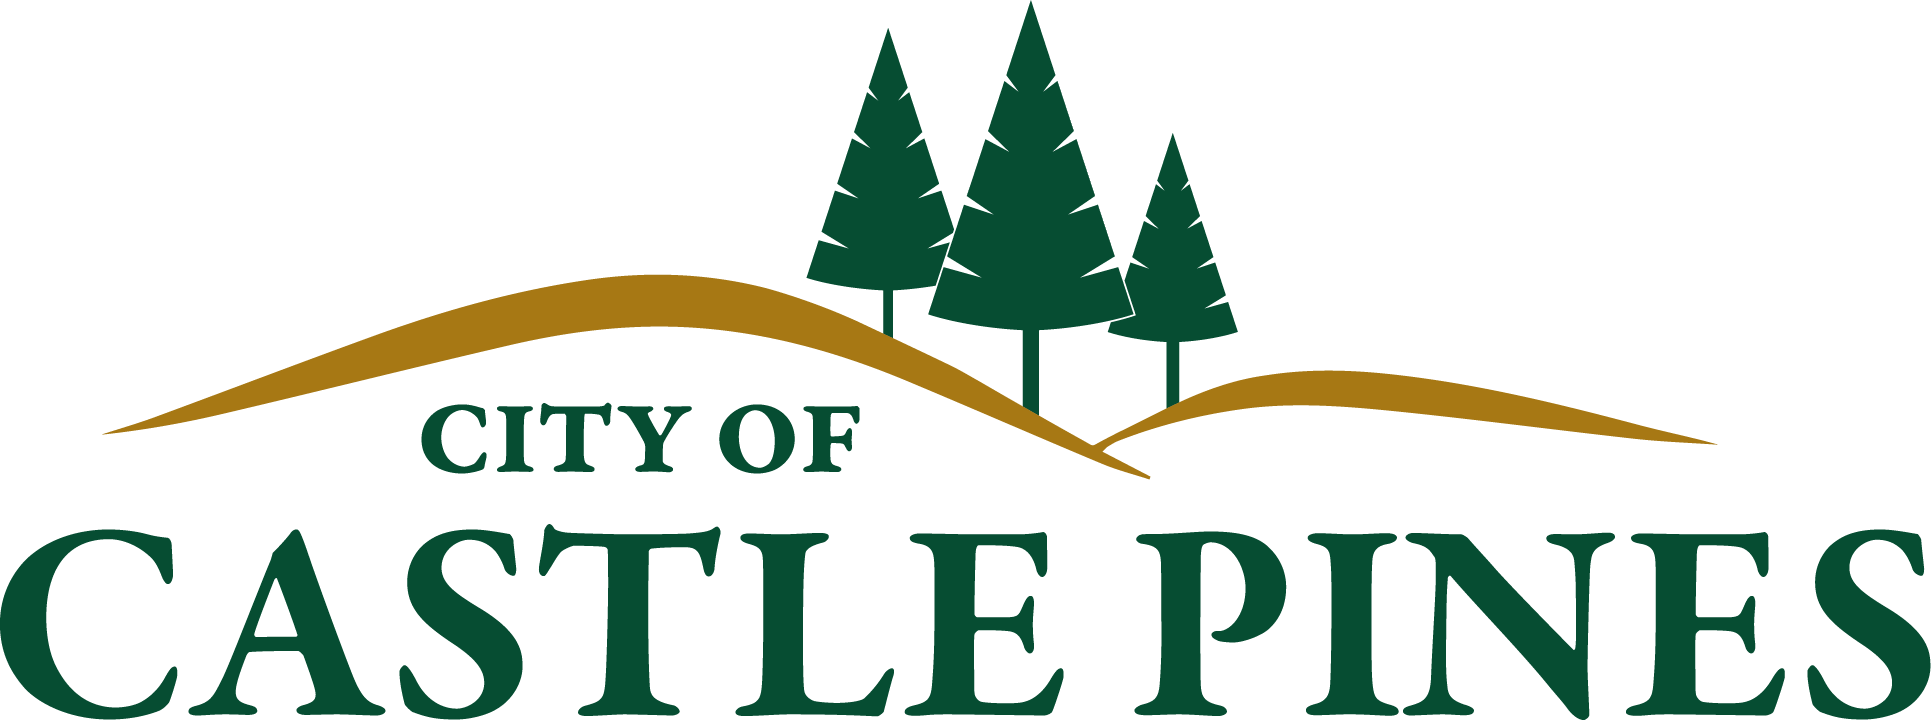 City of CP logo